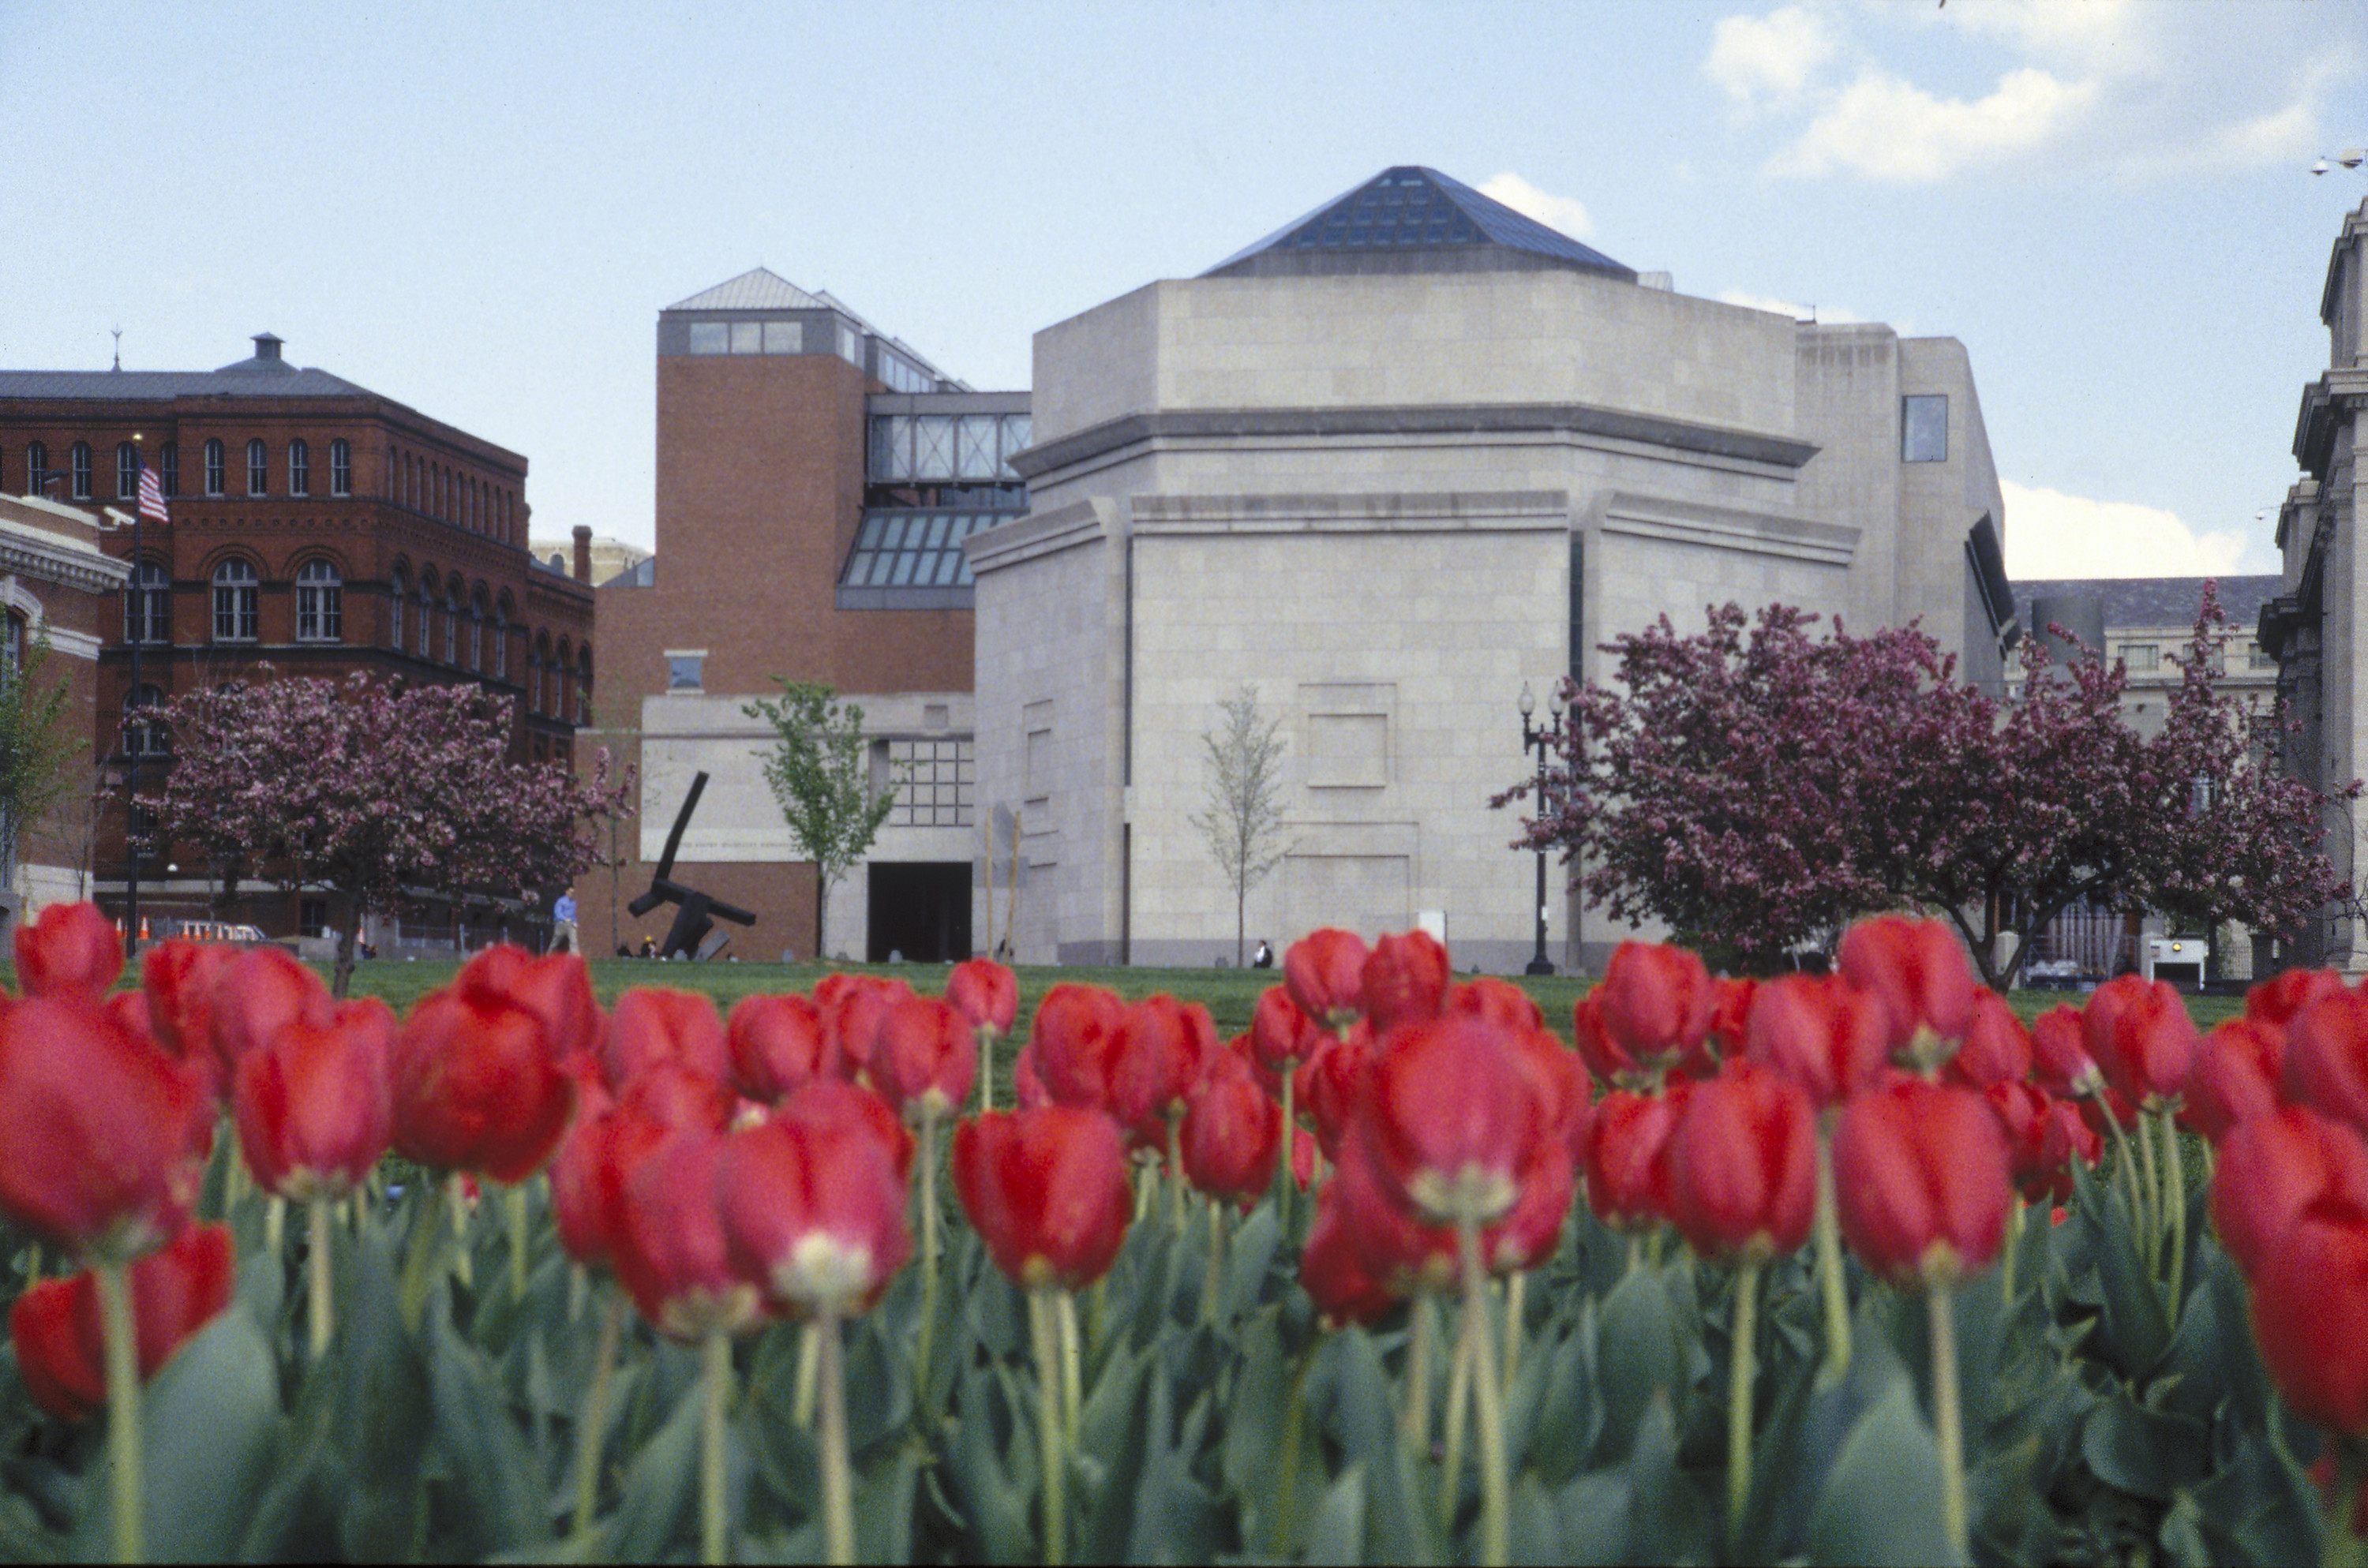 View of the U.S. Holocaust Memorial Museum from a tulip garden across 15th Street.